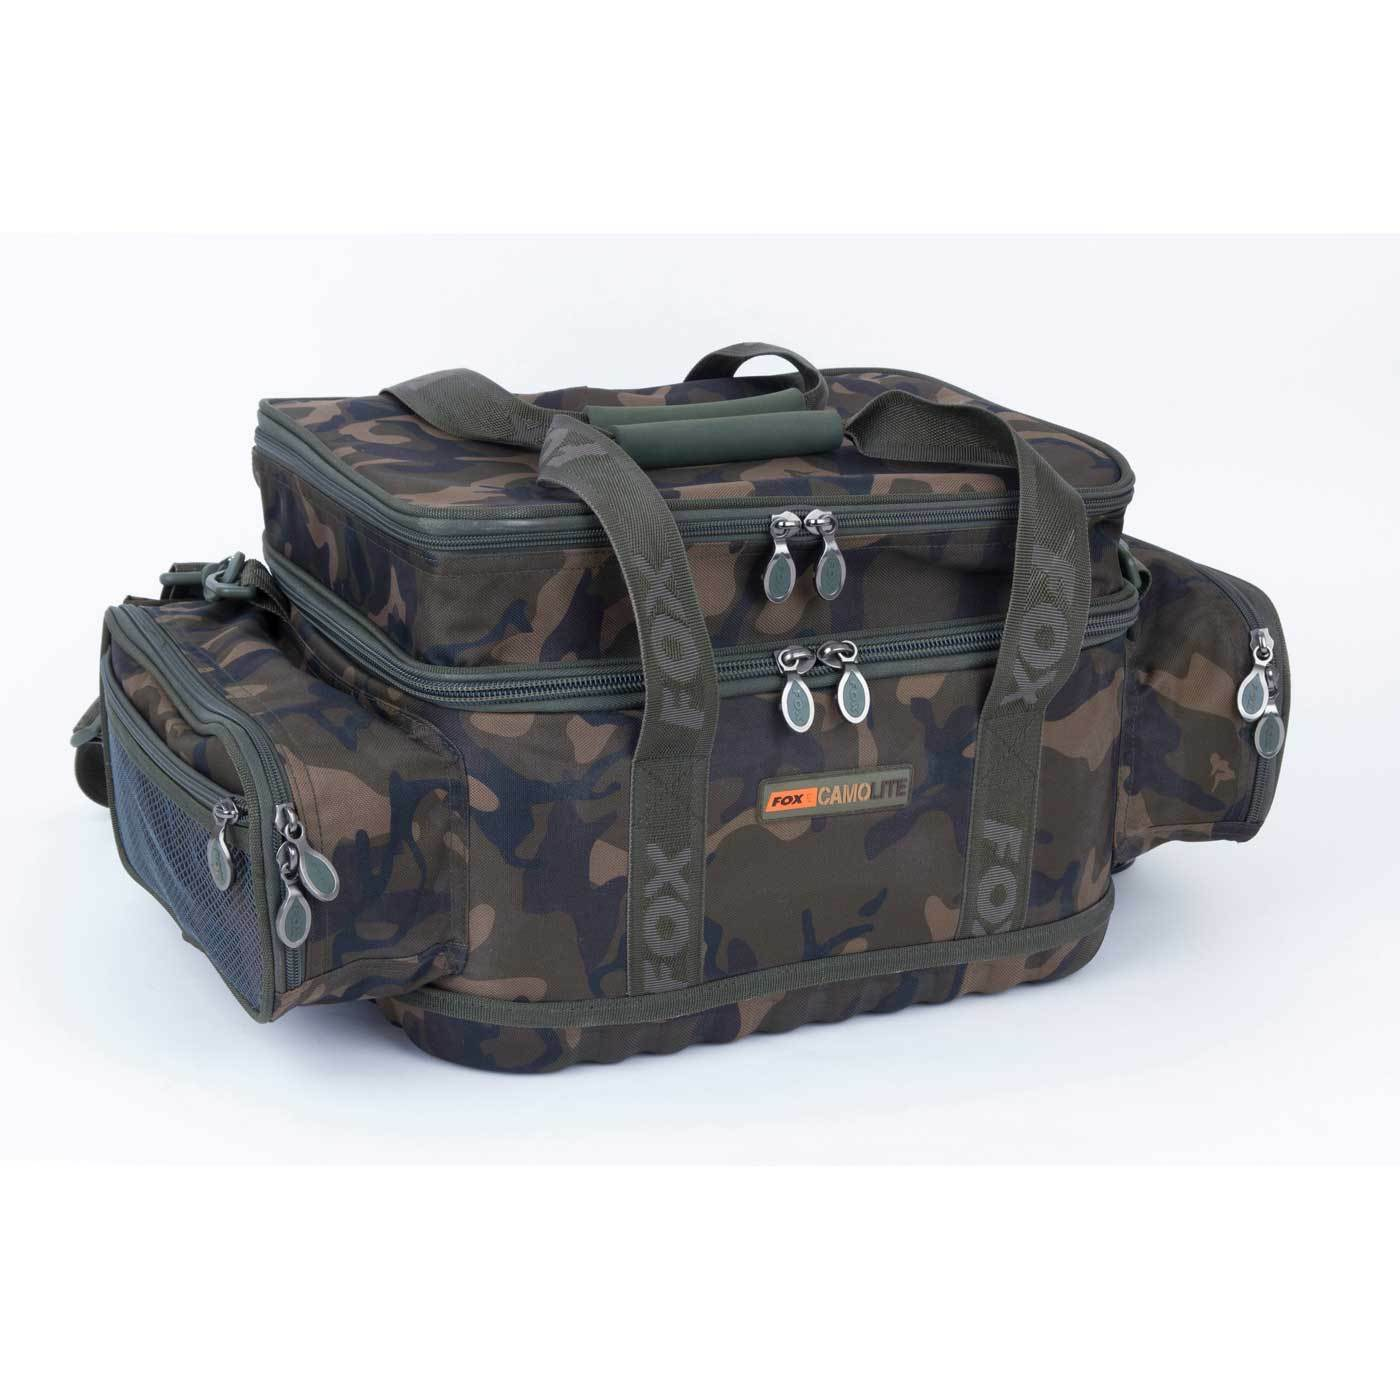 Fox Camolite Low Level Carryall Brand New FREE Delivery - CLU298